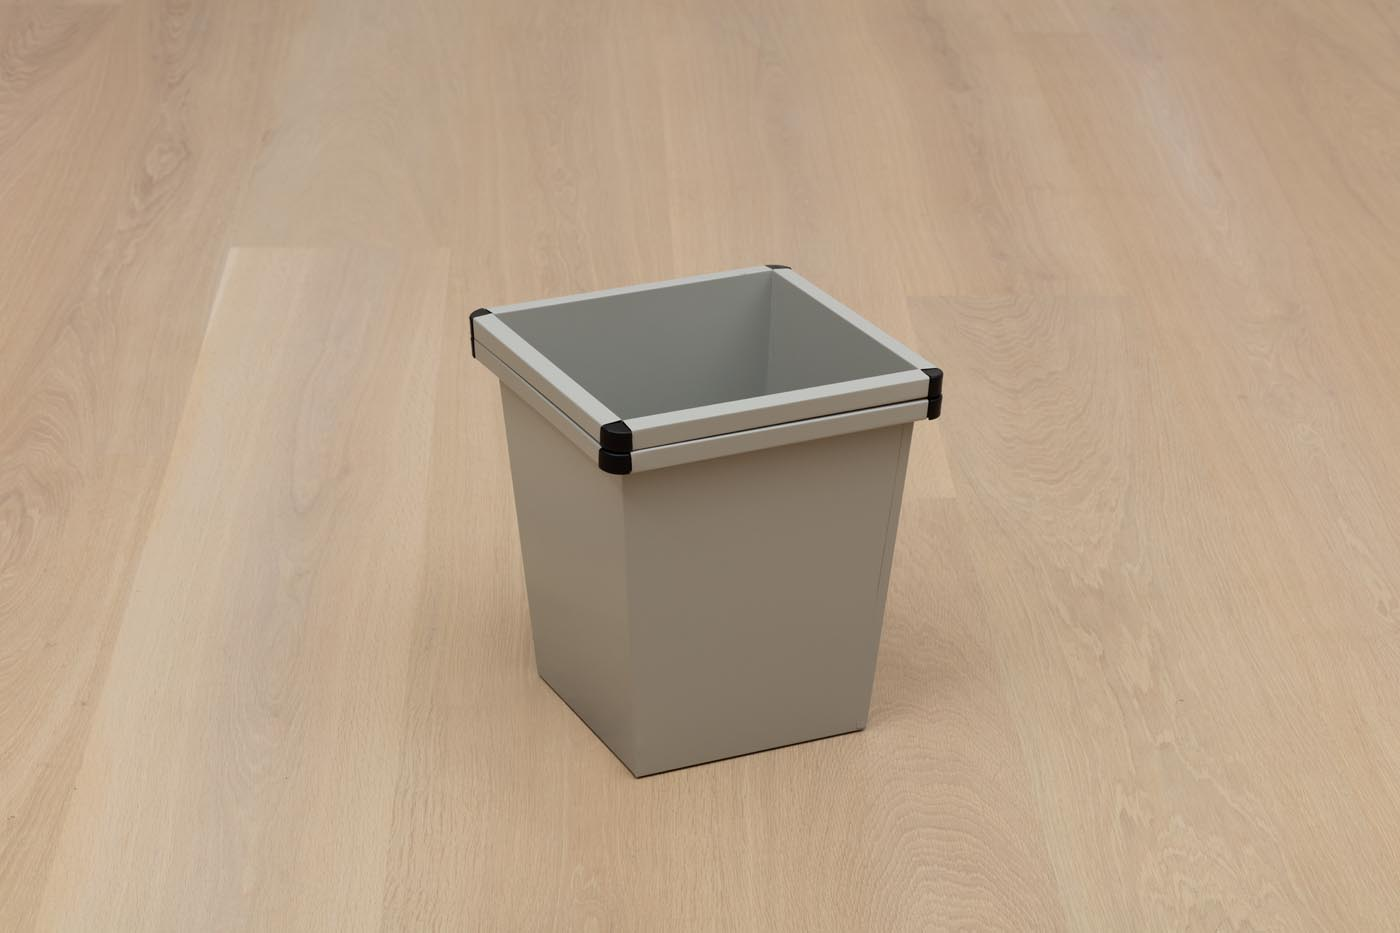 <p><em>No two things can be the same</em><br />2012, disposed bin, 38,5 × 34 × 34 cm<br />photo: Brian Forrest, Image courtesy of the Hammer Museum</p>